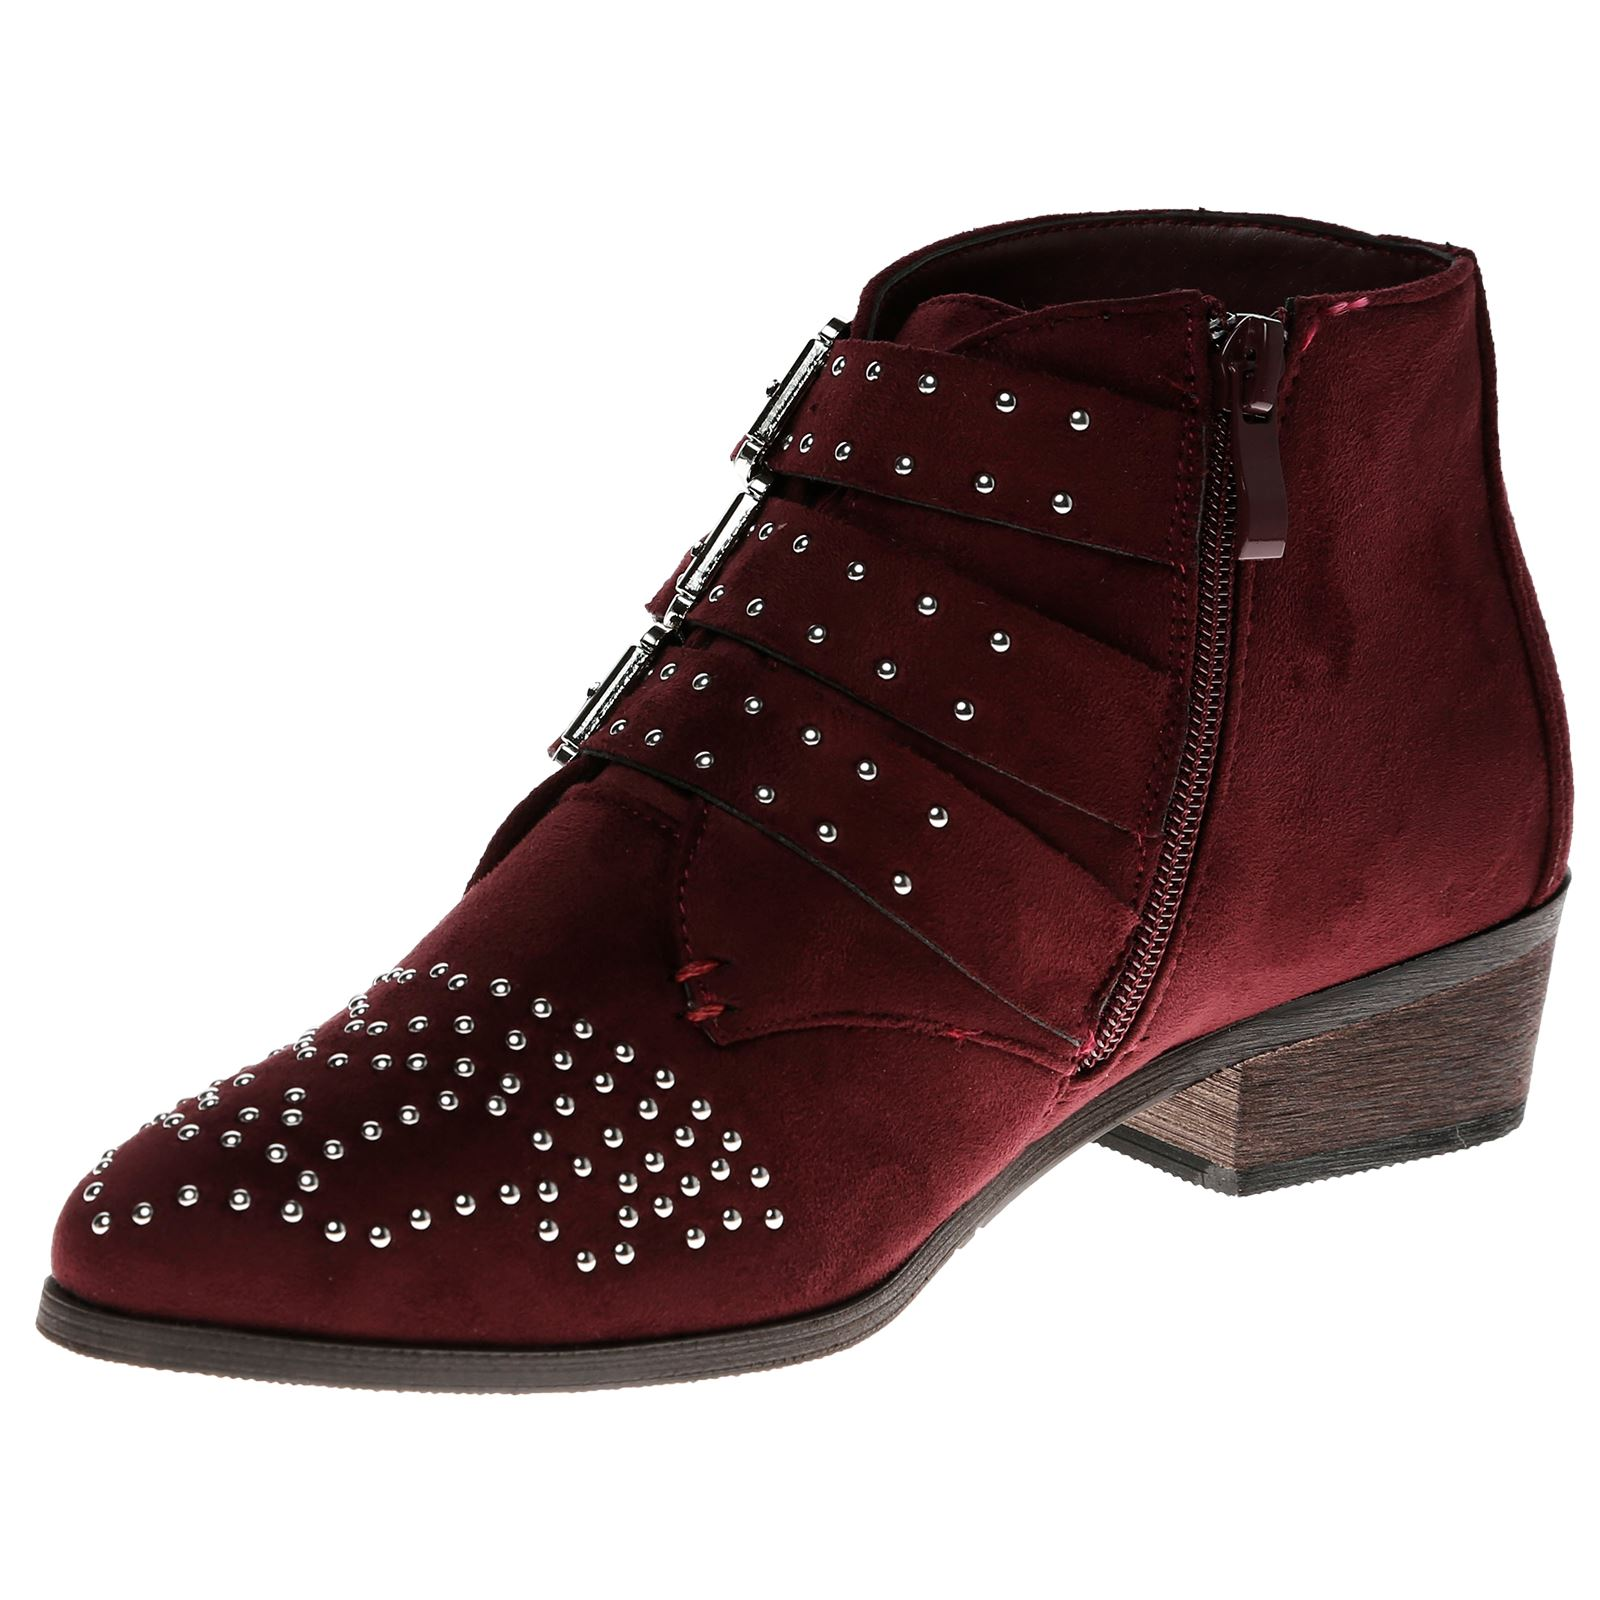 Liv-Womens-Flats-Low-Heels-Buckle-Strappy-Biker-Ankle-Boots-Ladies-Shoes-Studded thumbnail 32